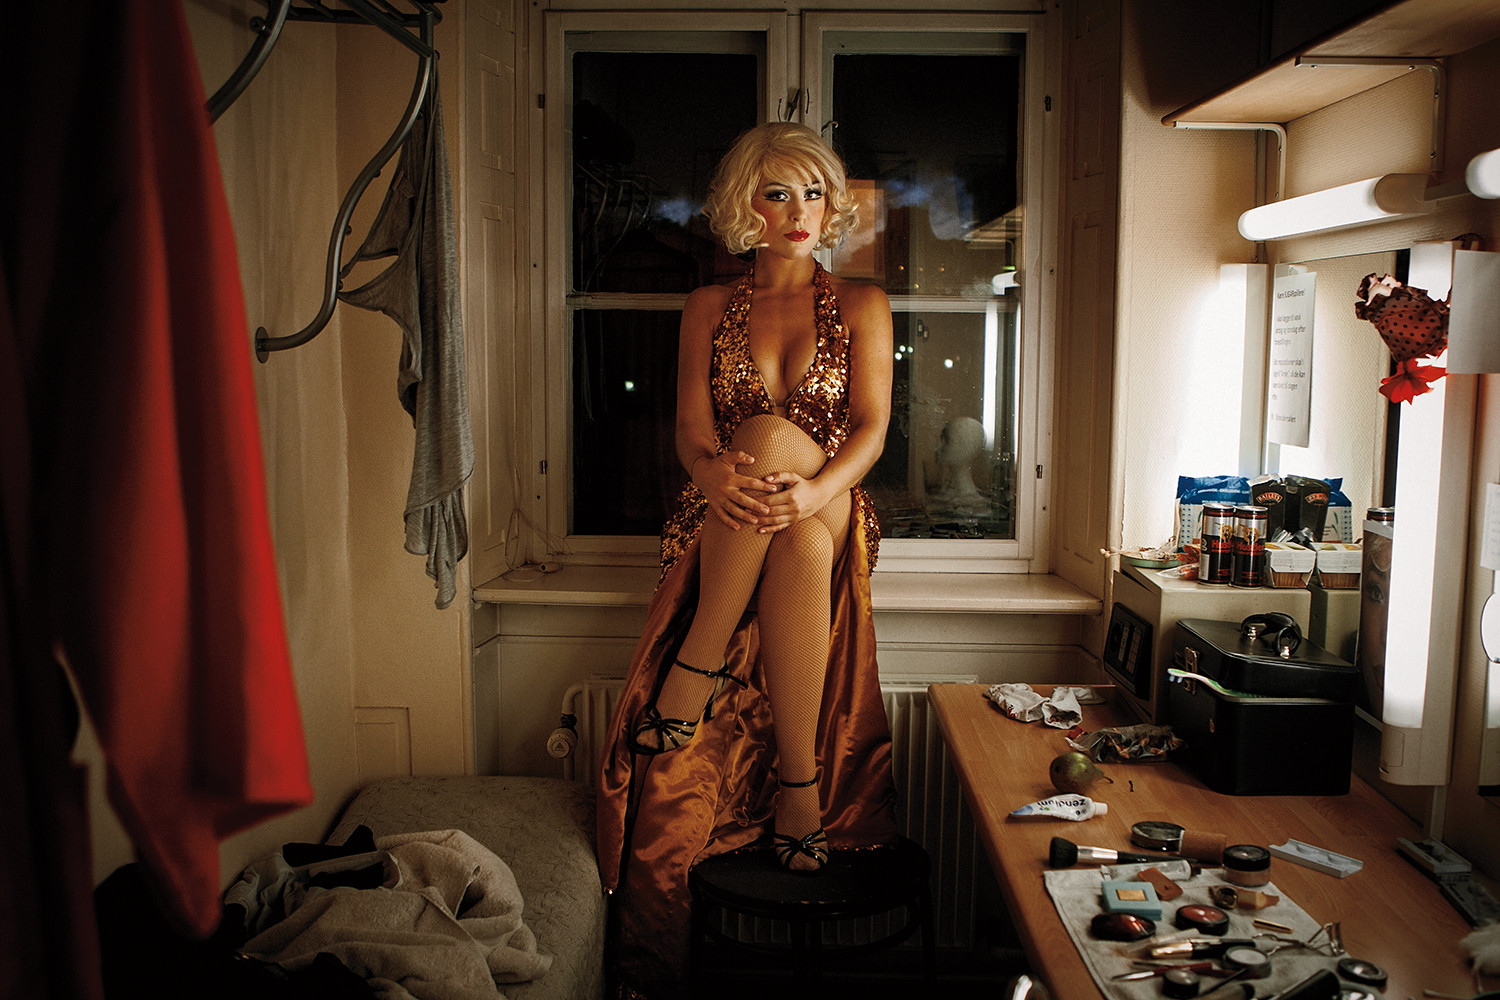 Maria Lucia Heiberg Rosenberg. Danish singer and actor while playing her role as Marilyn Monroe. Shot for BT.